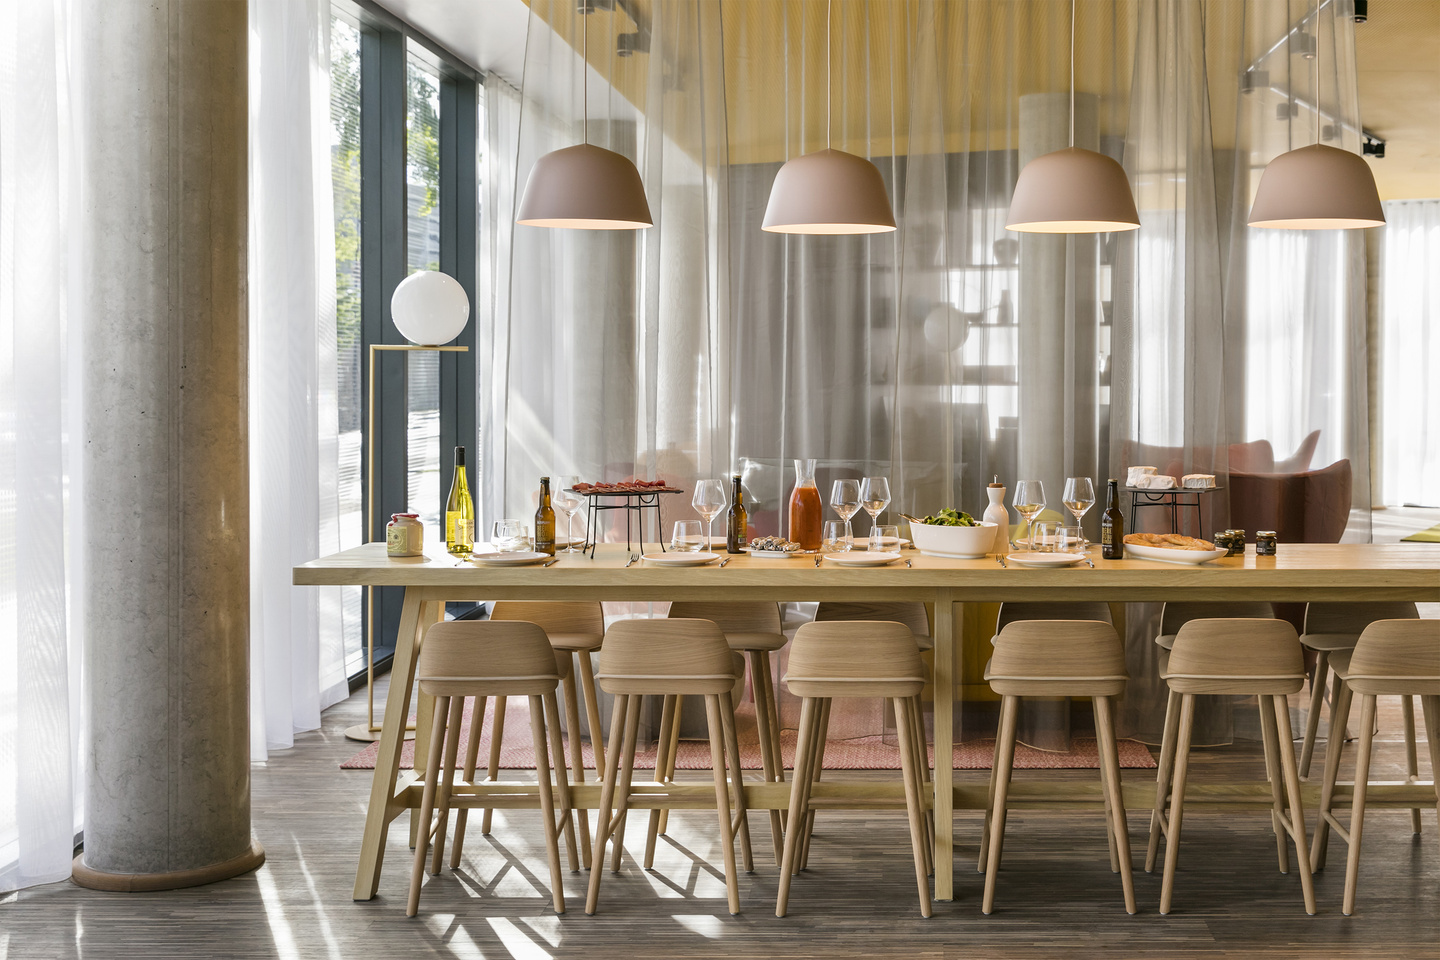 Patrick Norguet designs Colorful Interior for Okko Hotels patrick norguet Patrick Norguet designs Colorful Interior for Okko Hotels Patrick Norguet designs Colorful Interior for Okko Hotels 5